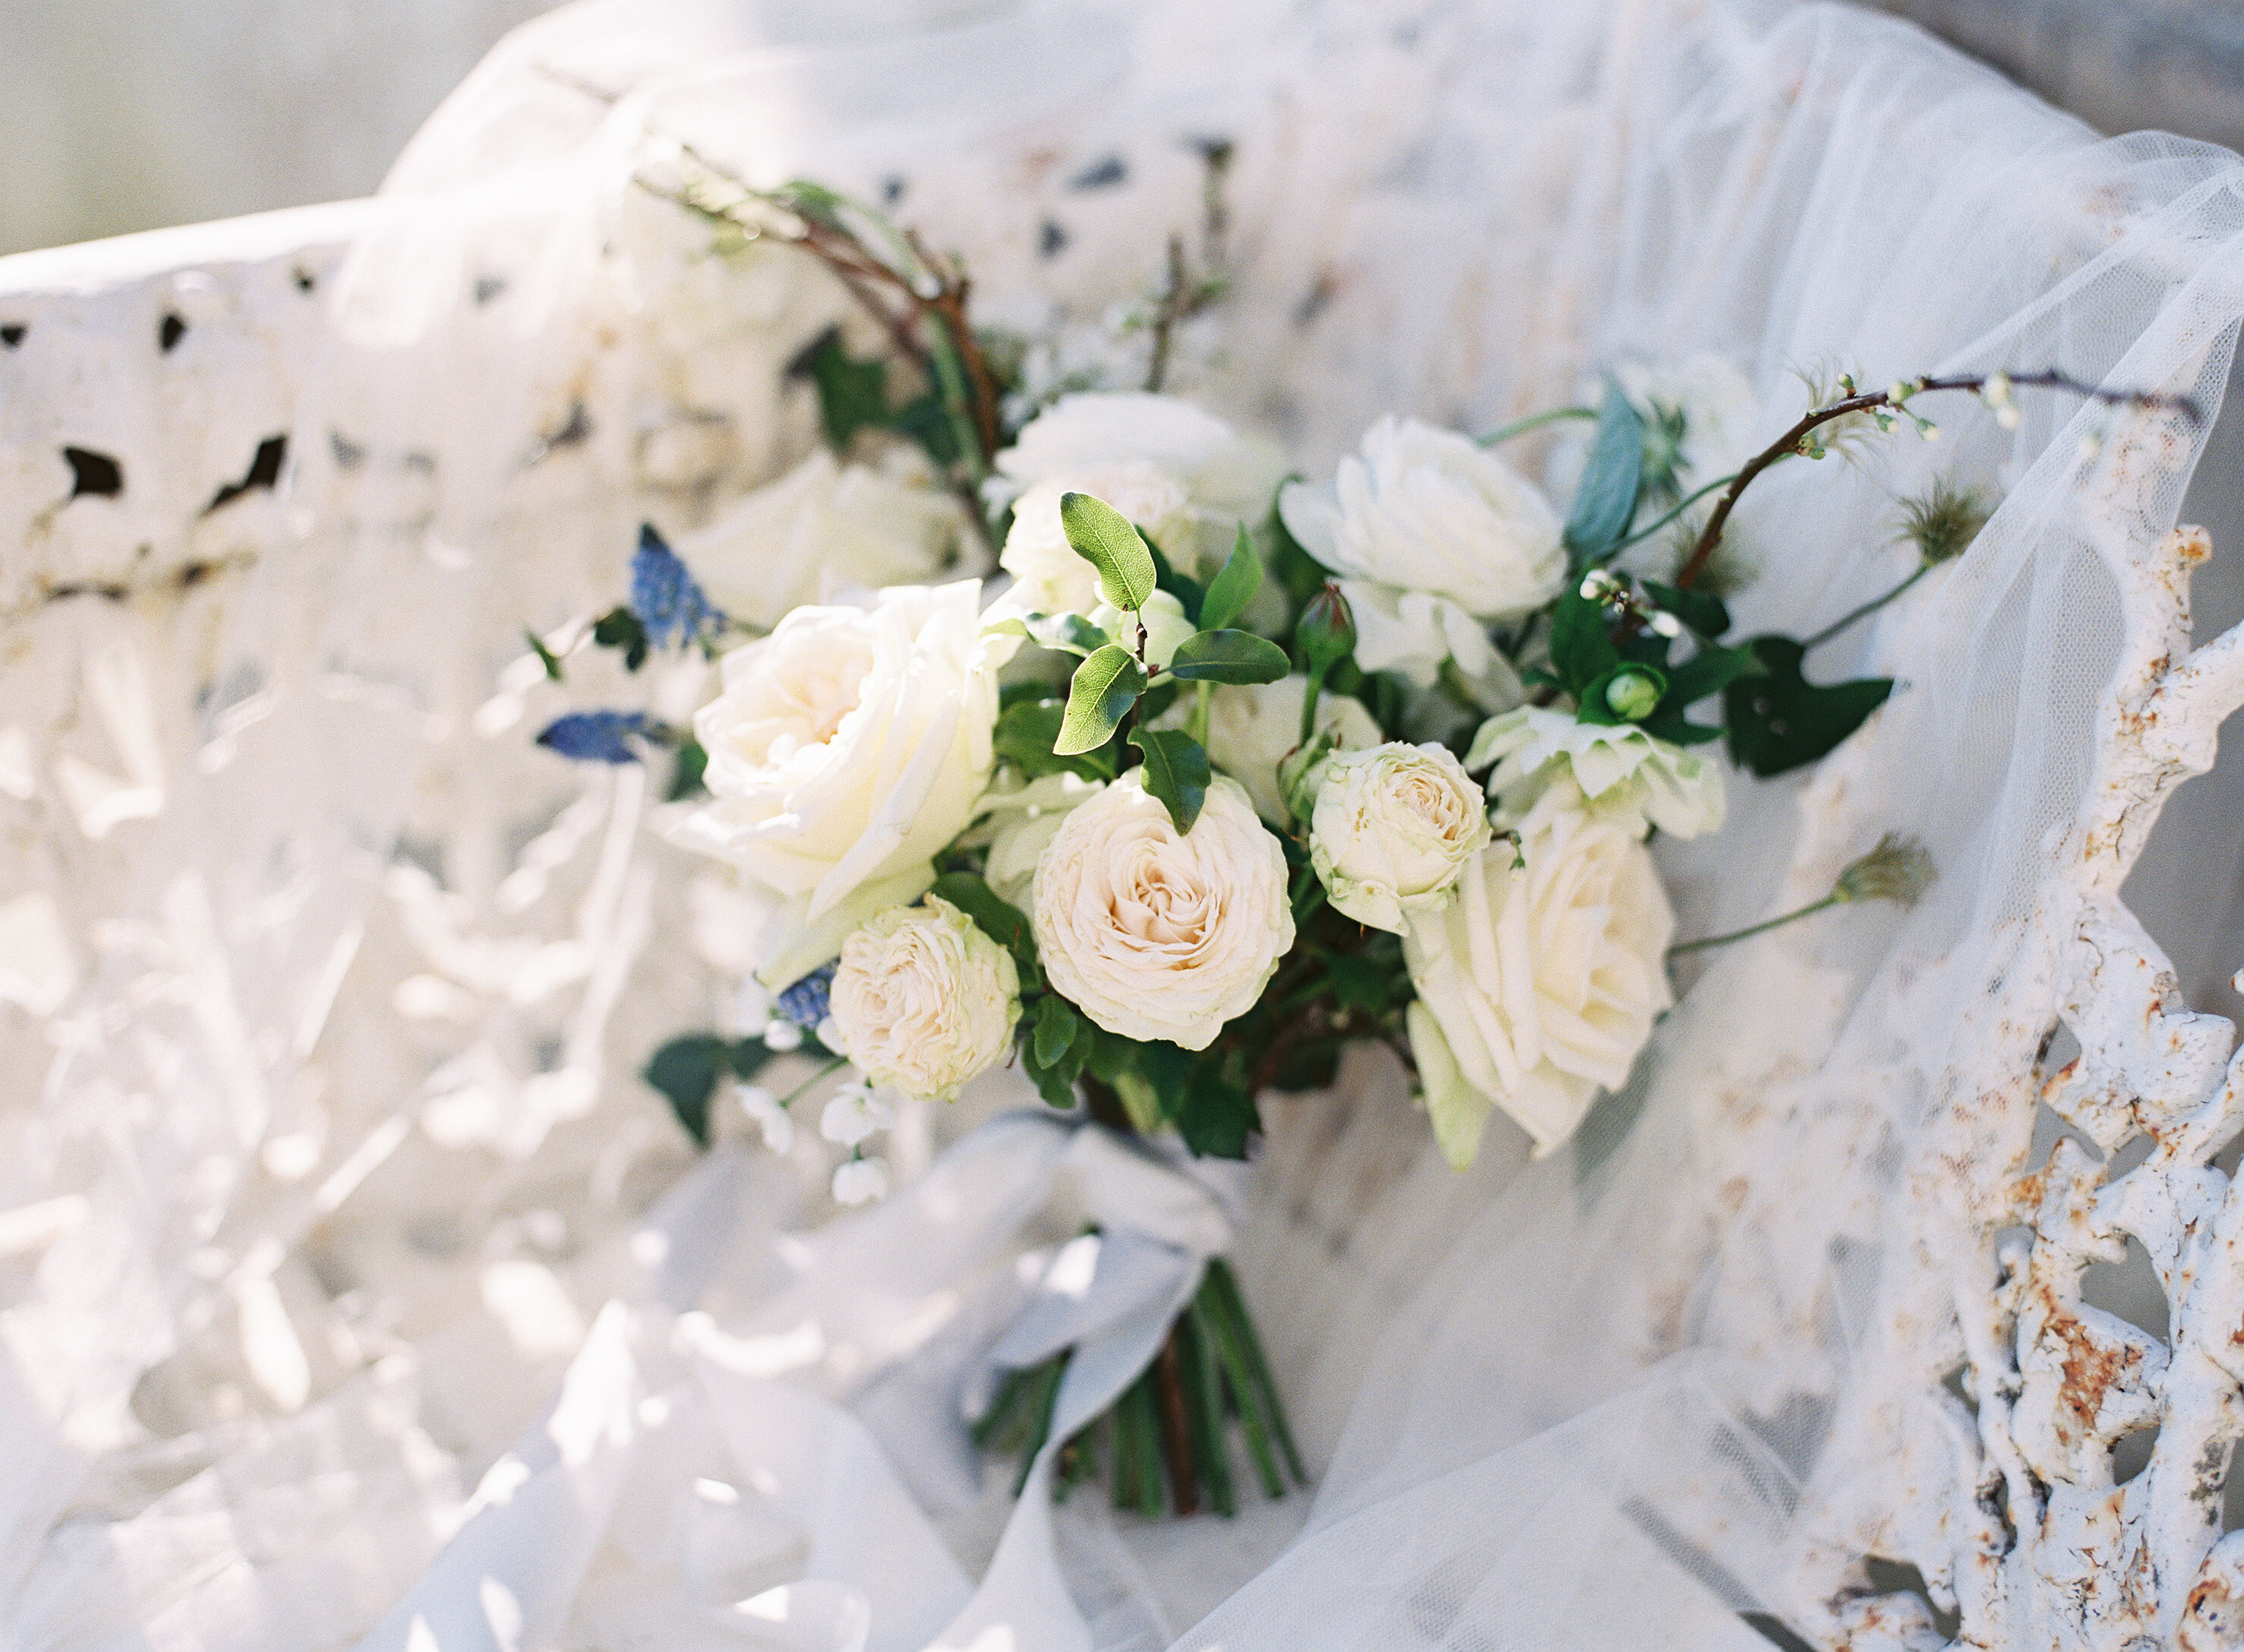 Dreamy organic florals in this bridal bouquet from Blue Sky Flowers for Spring wedding inspiration. Photo by Camilla Arnhold